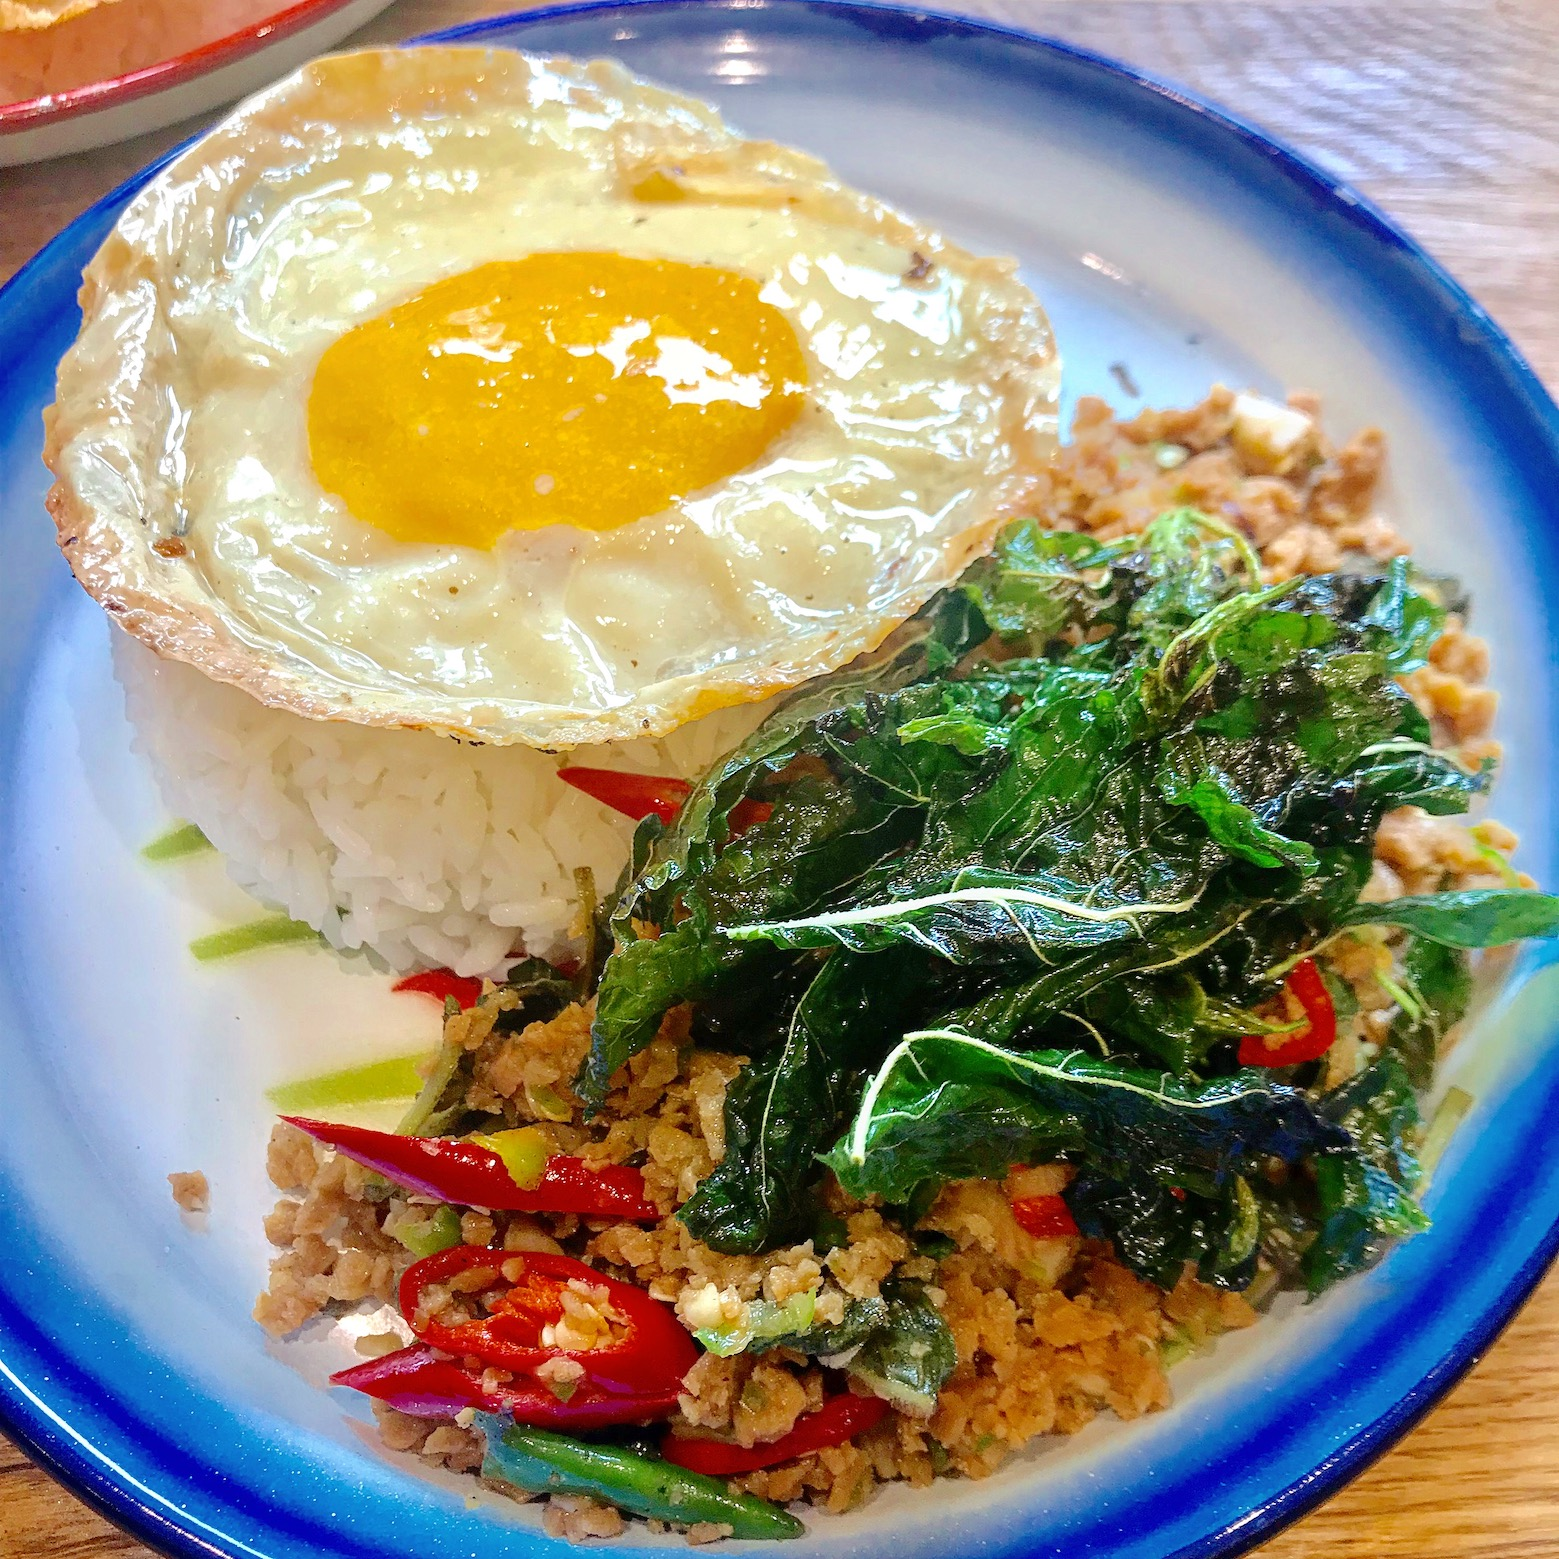 https://i1.wp.com/fatgayvegan.com/wp-content/uploads/2018/12/fried-egg-greedy-khai.jpg?fit=1559%2C1559